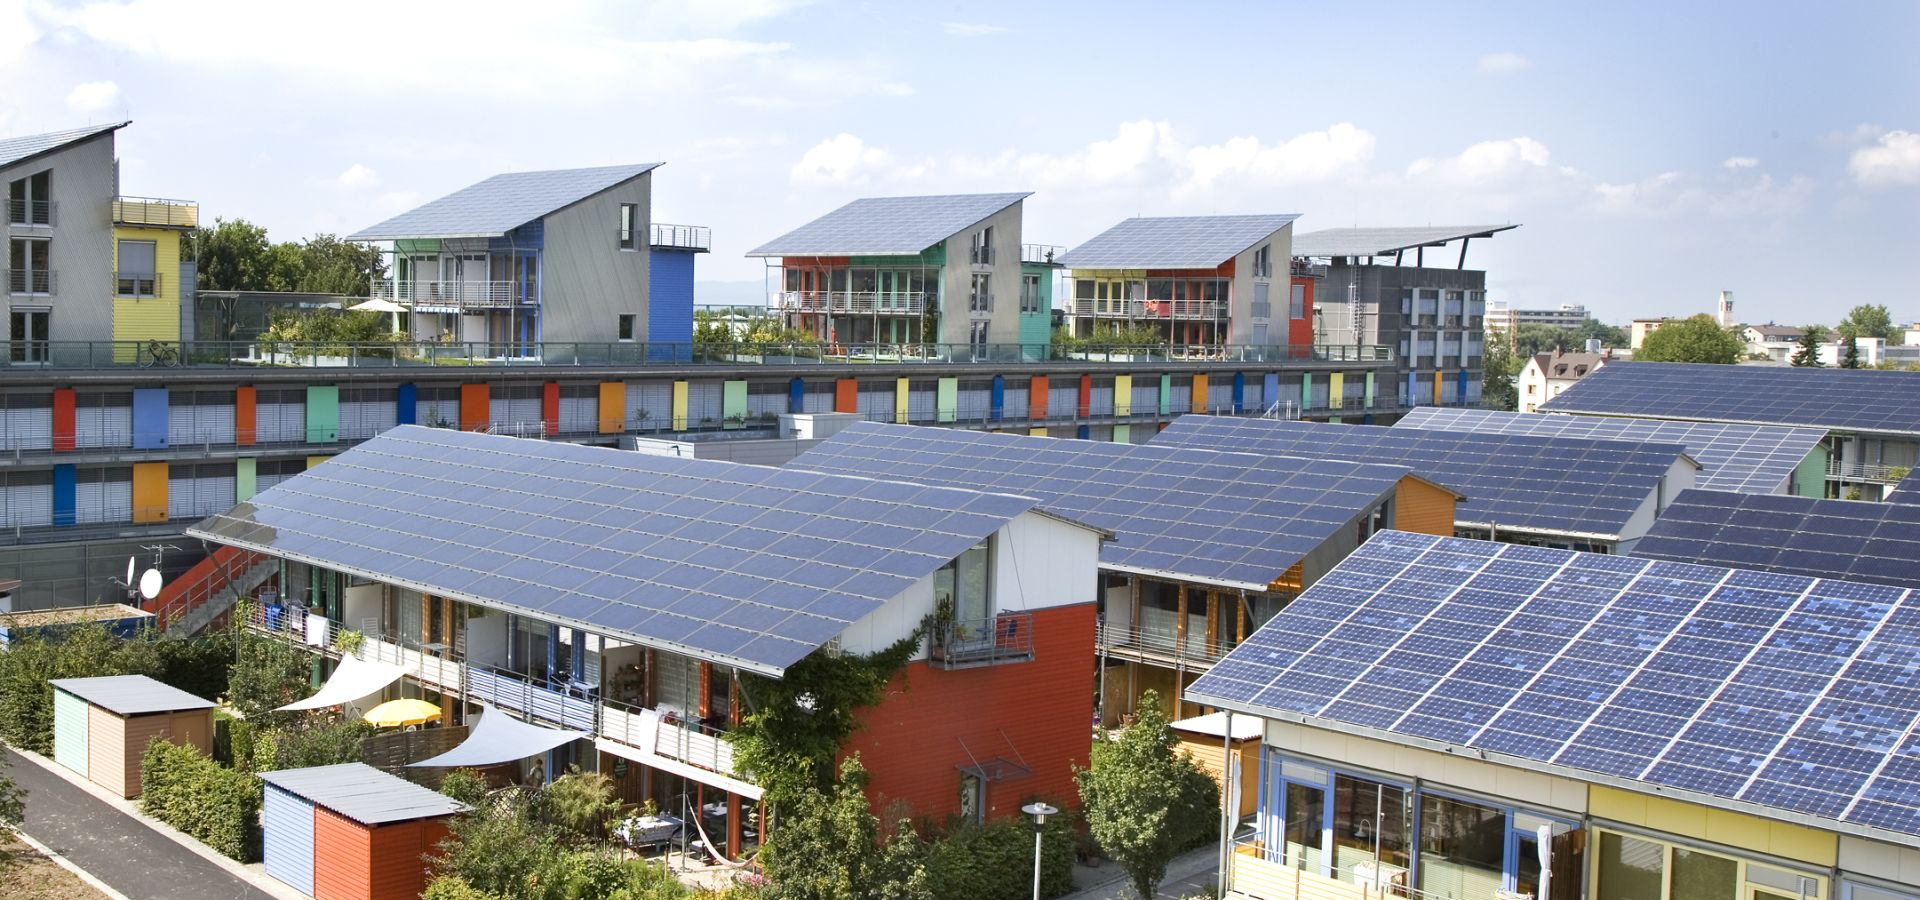 A lot of modern looking houses with solar cells on their roofs.